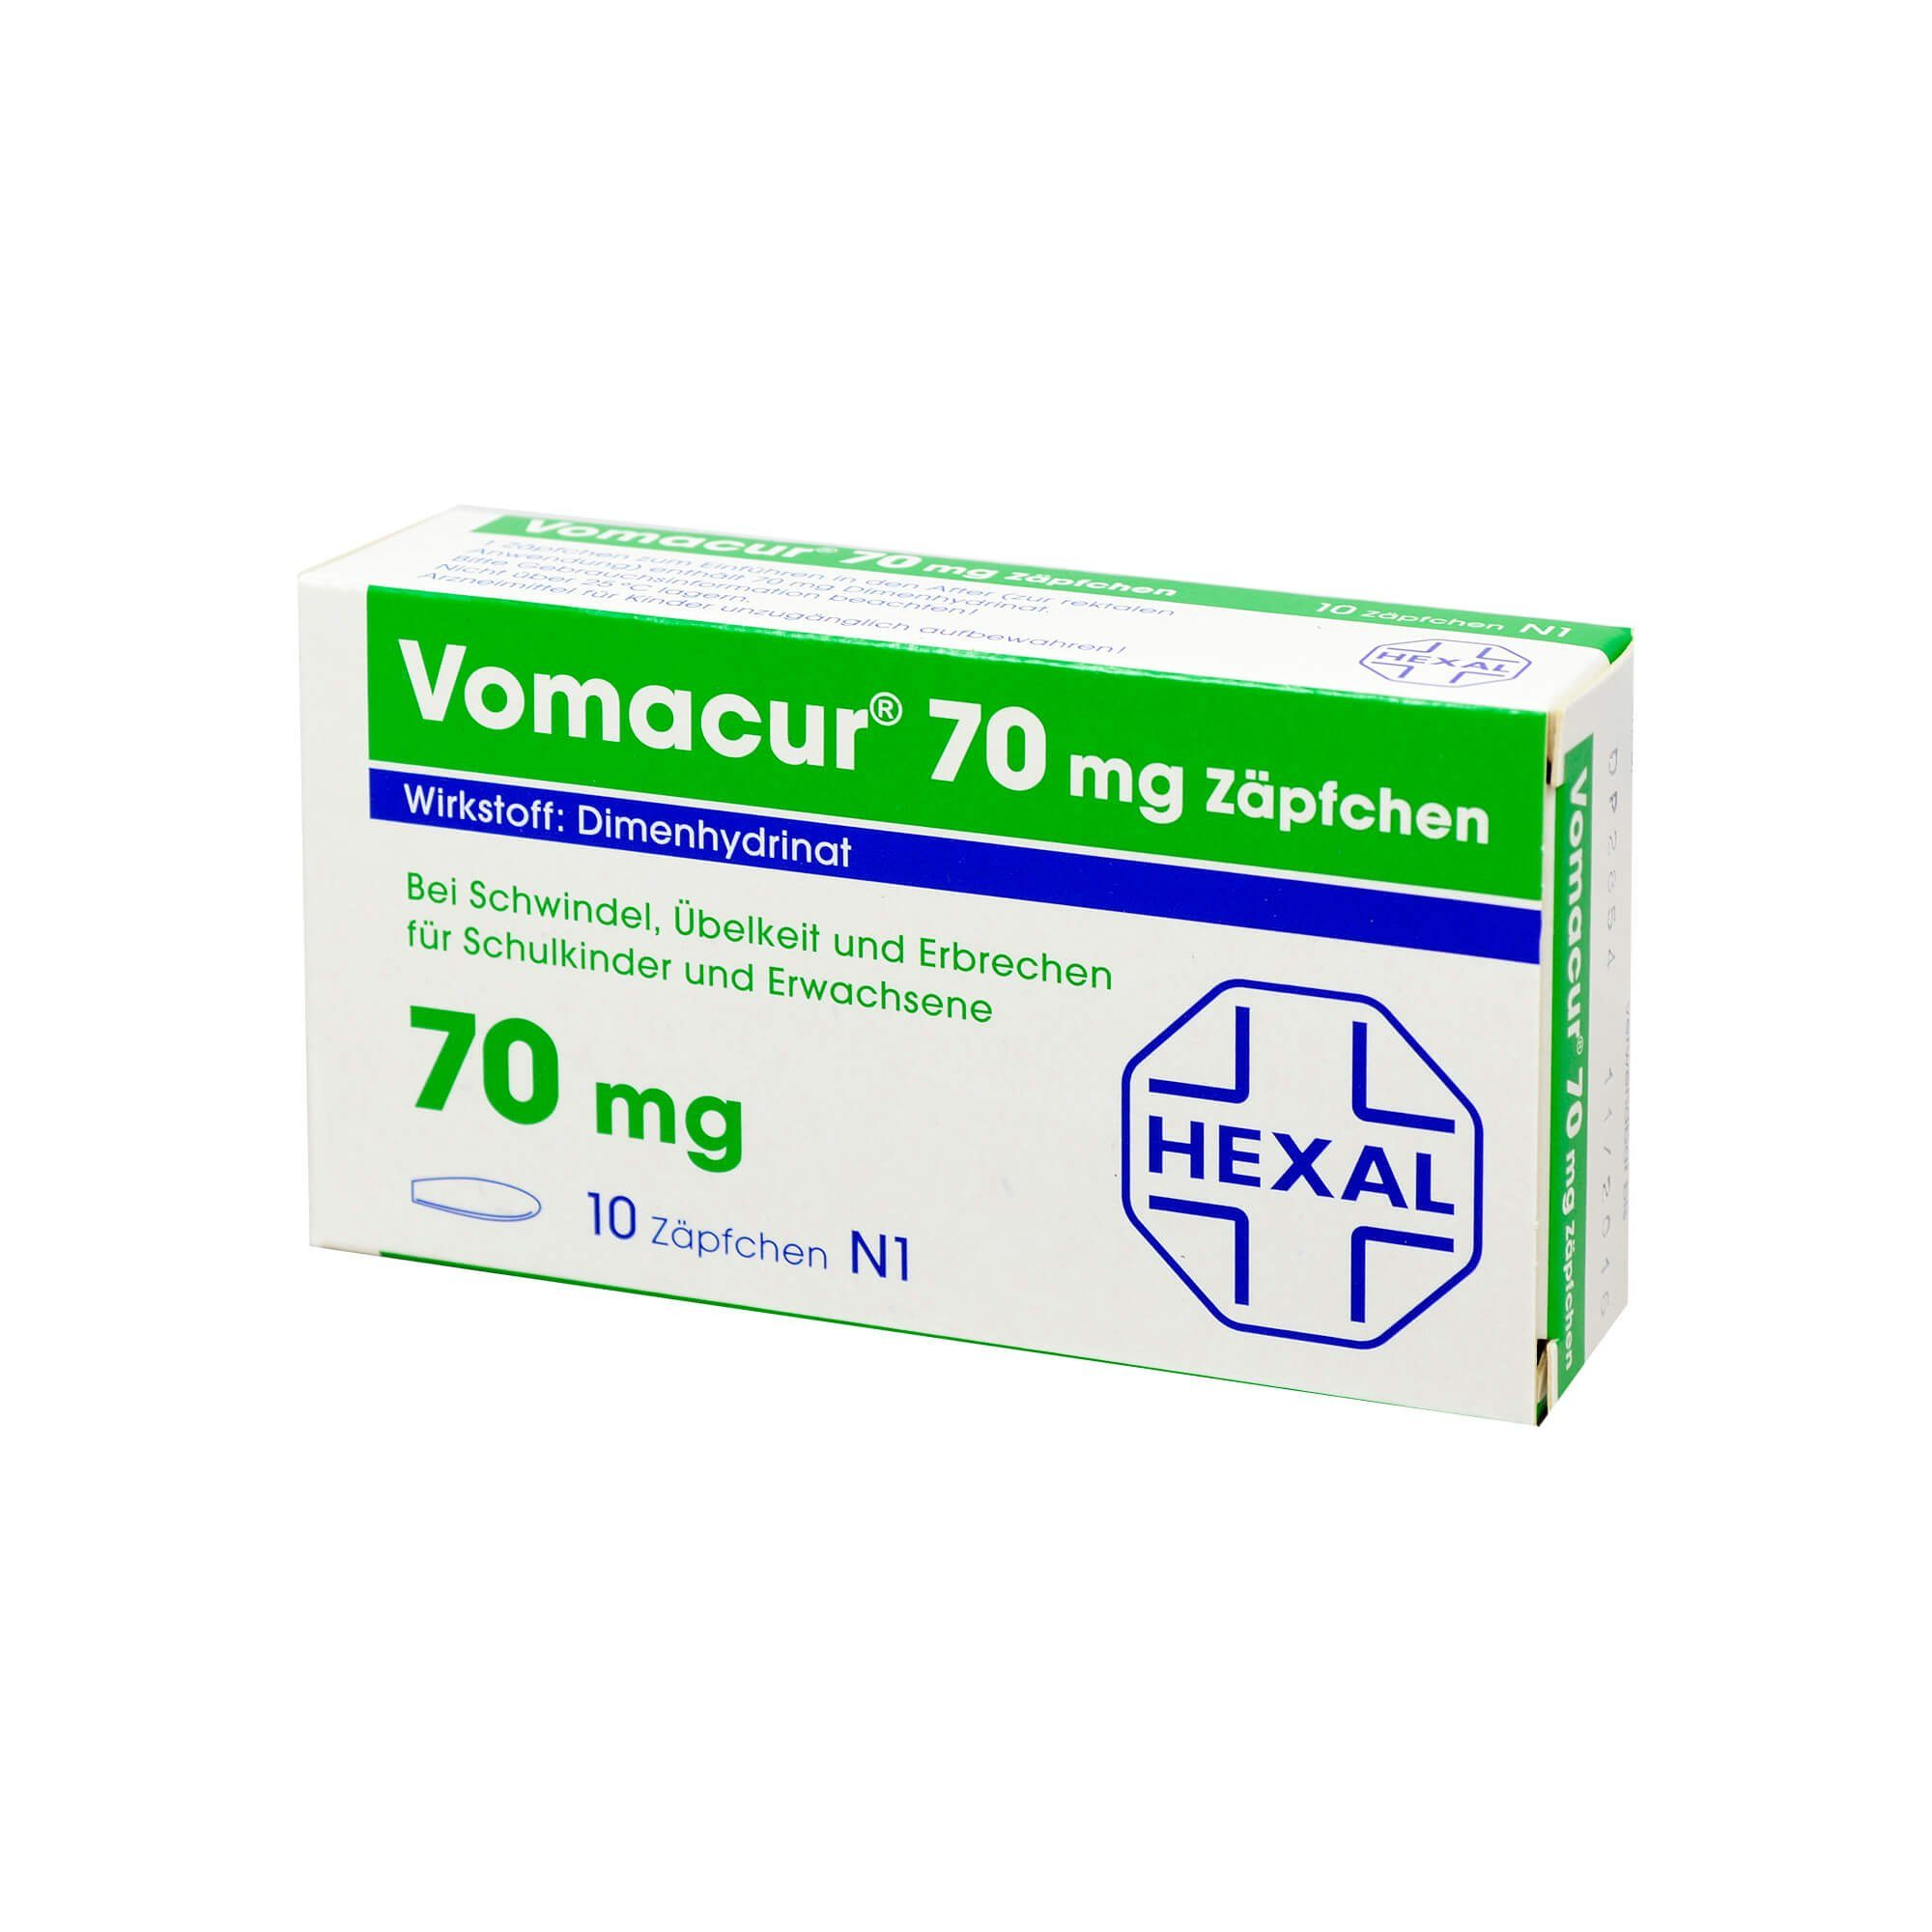 Vomacur 70 Suppositorien (, 10 St)